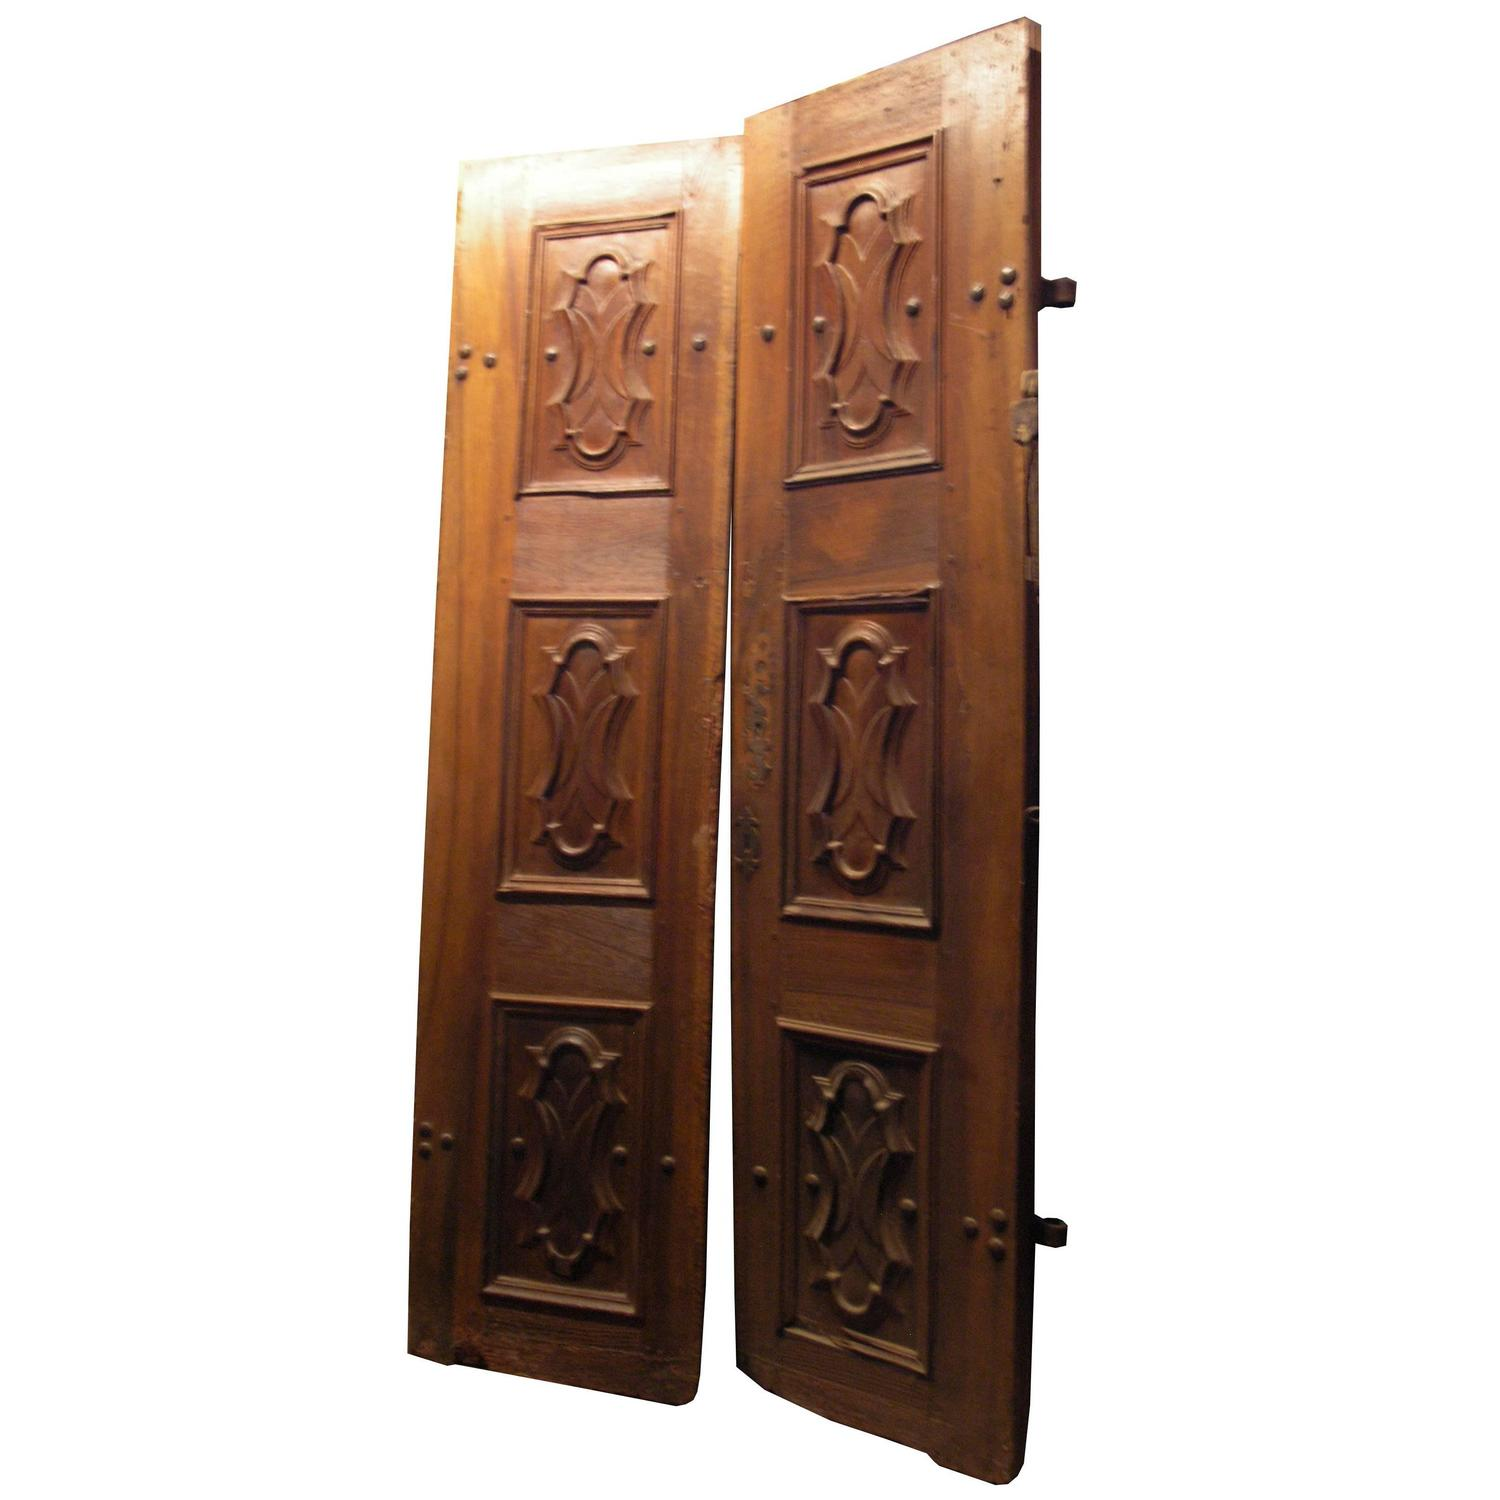 1500 #BC720F Antique Walnut Entry Door For Sale At 1stdibs save image Vintage Exterior Doors 41071500